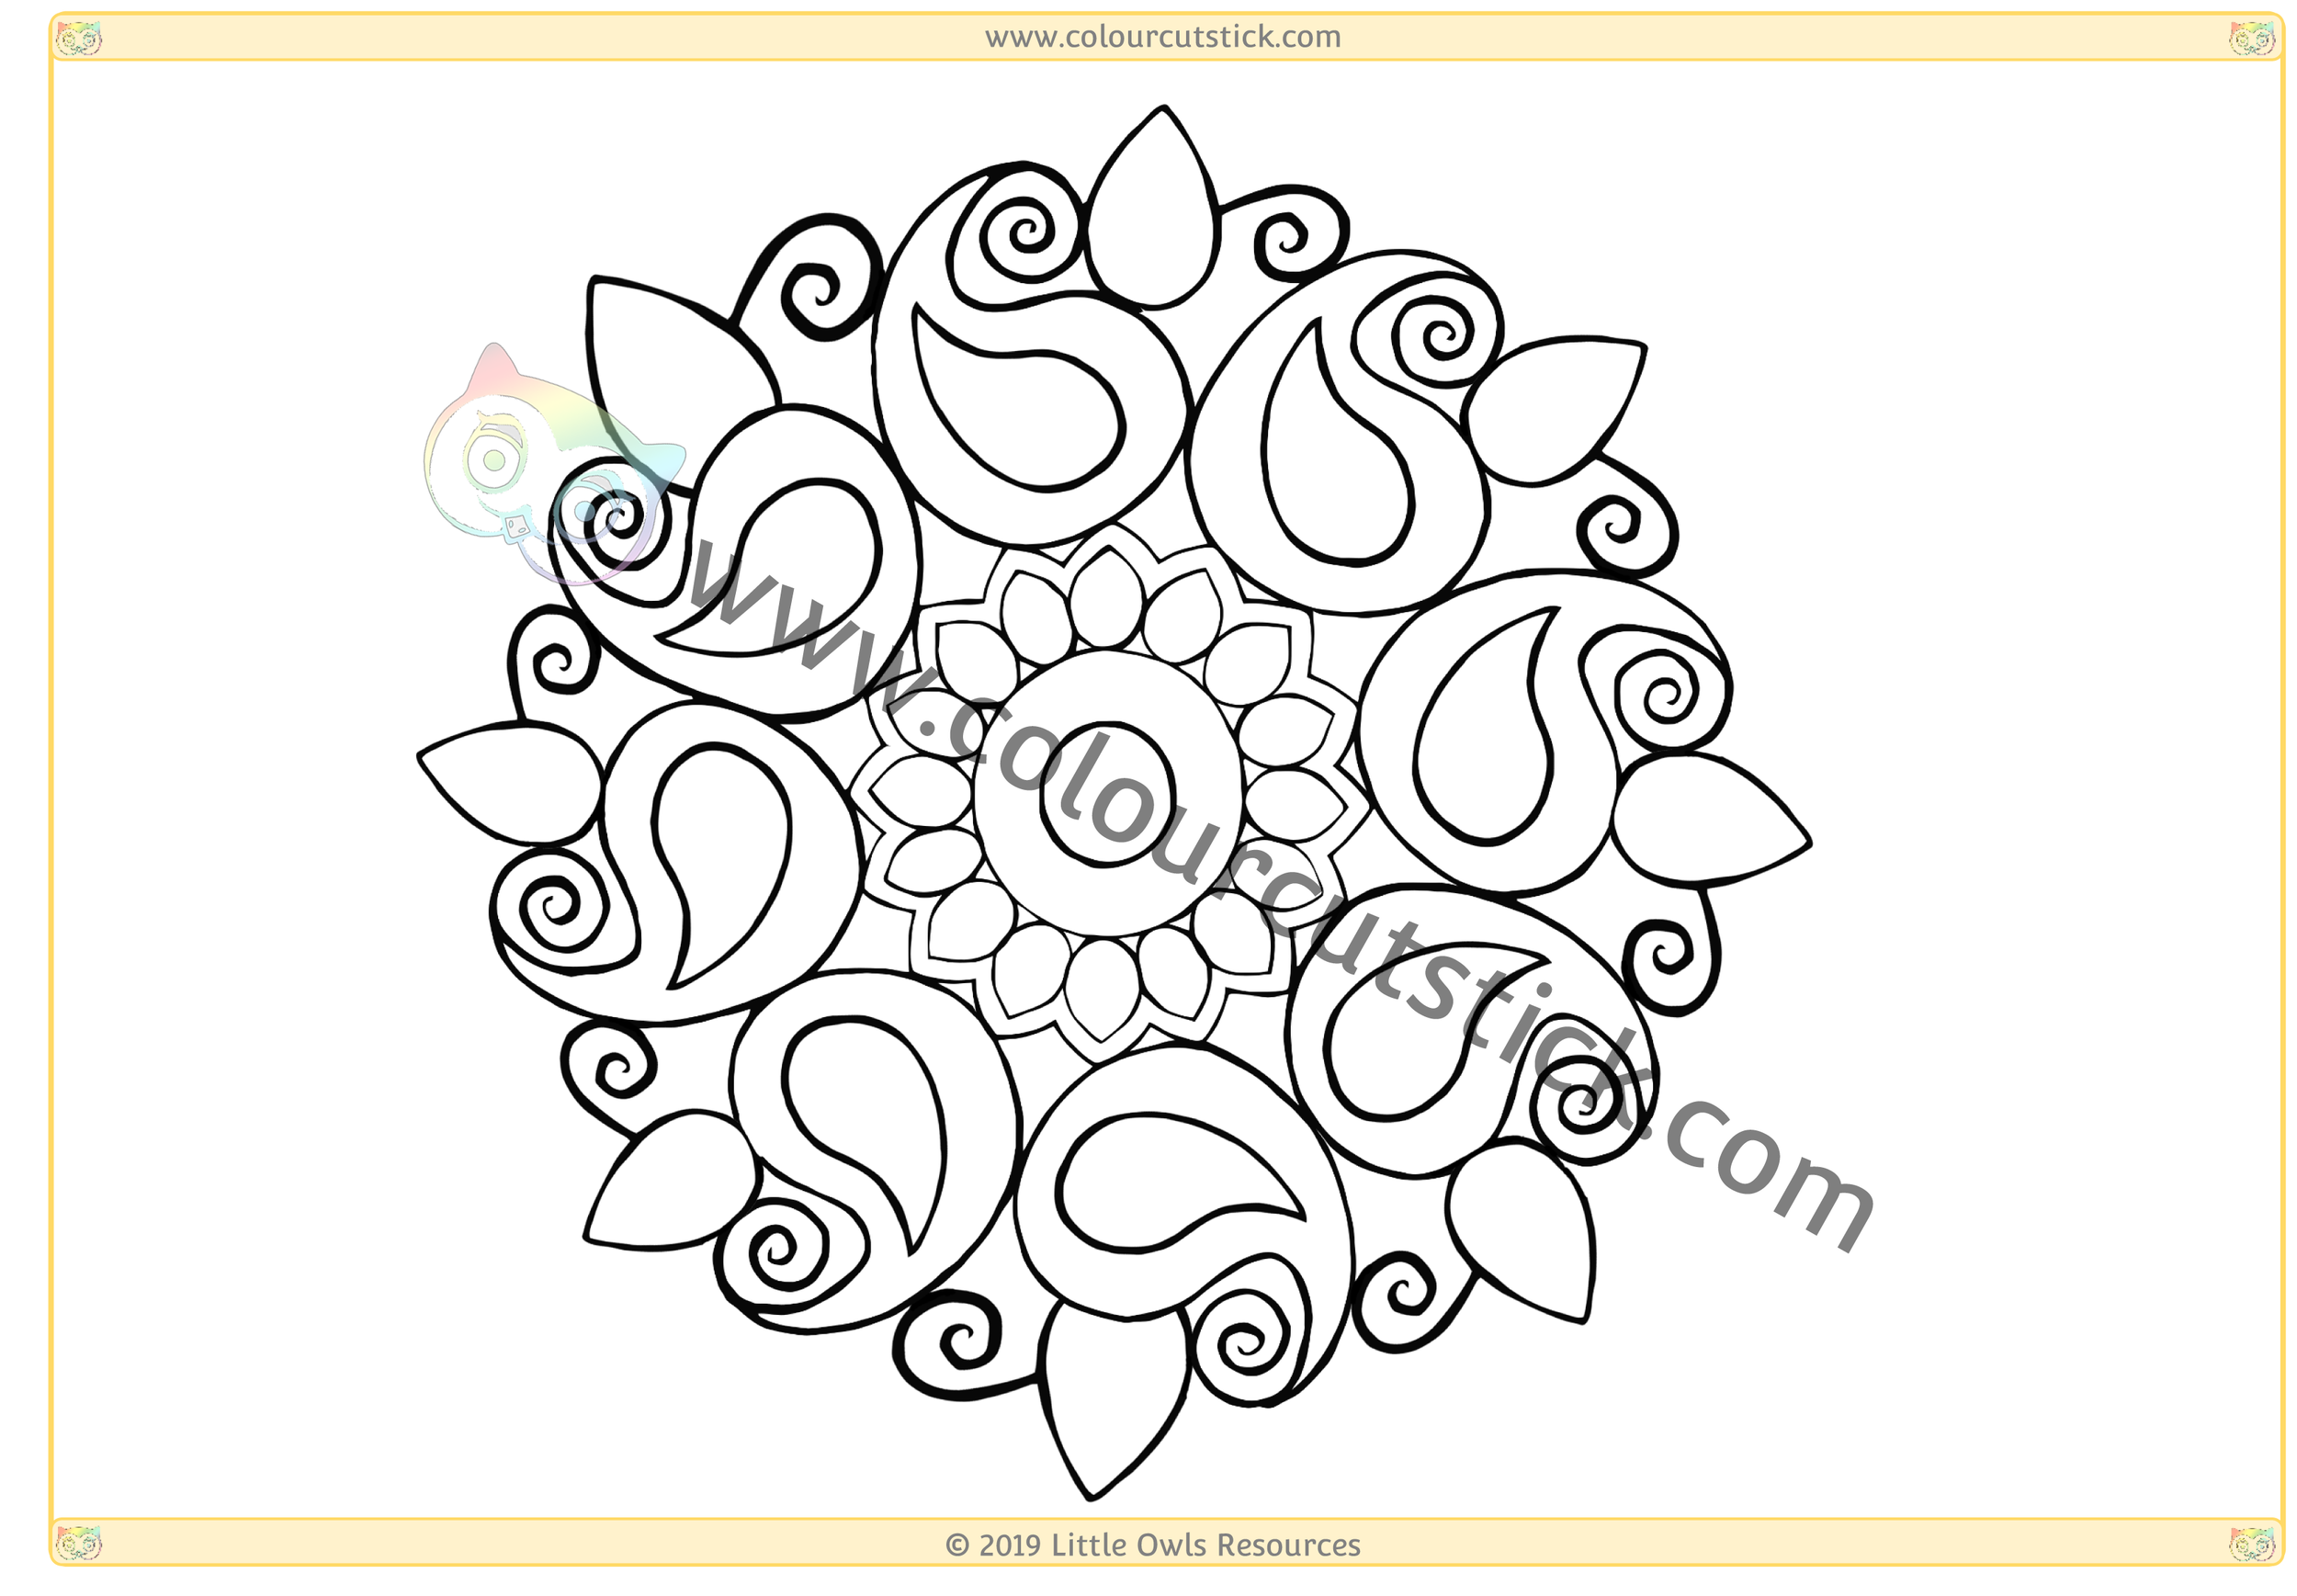 Diwali Colouring CSS-5.png